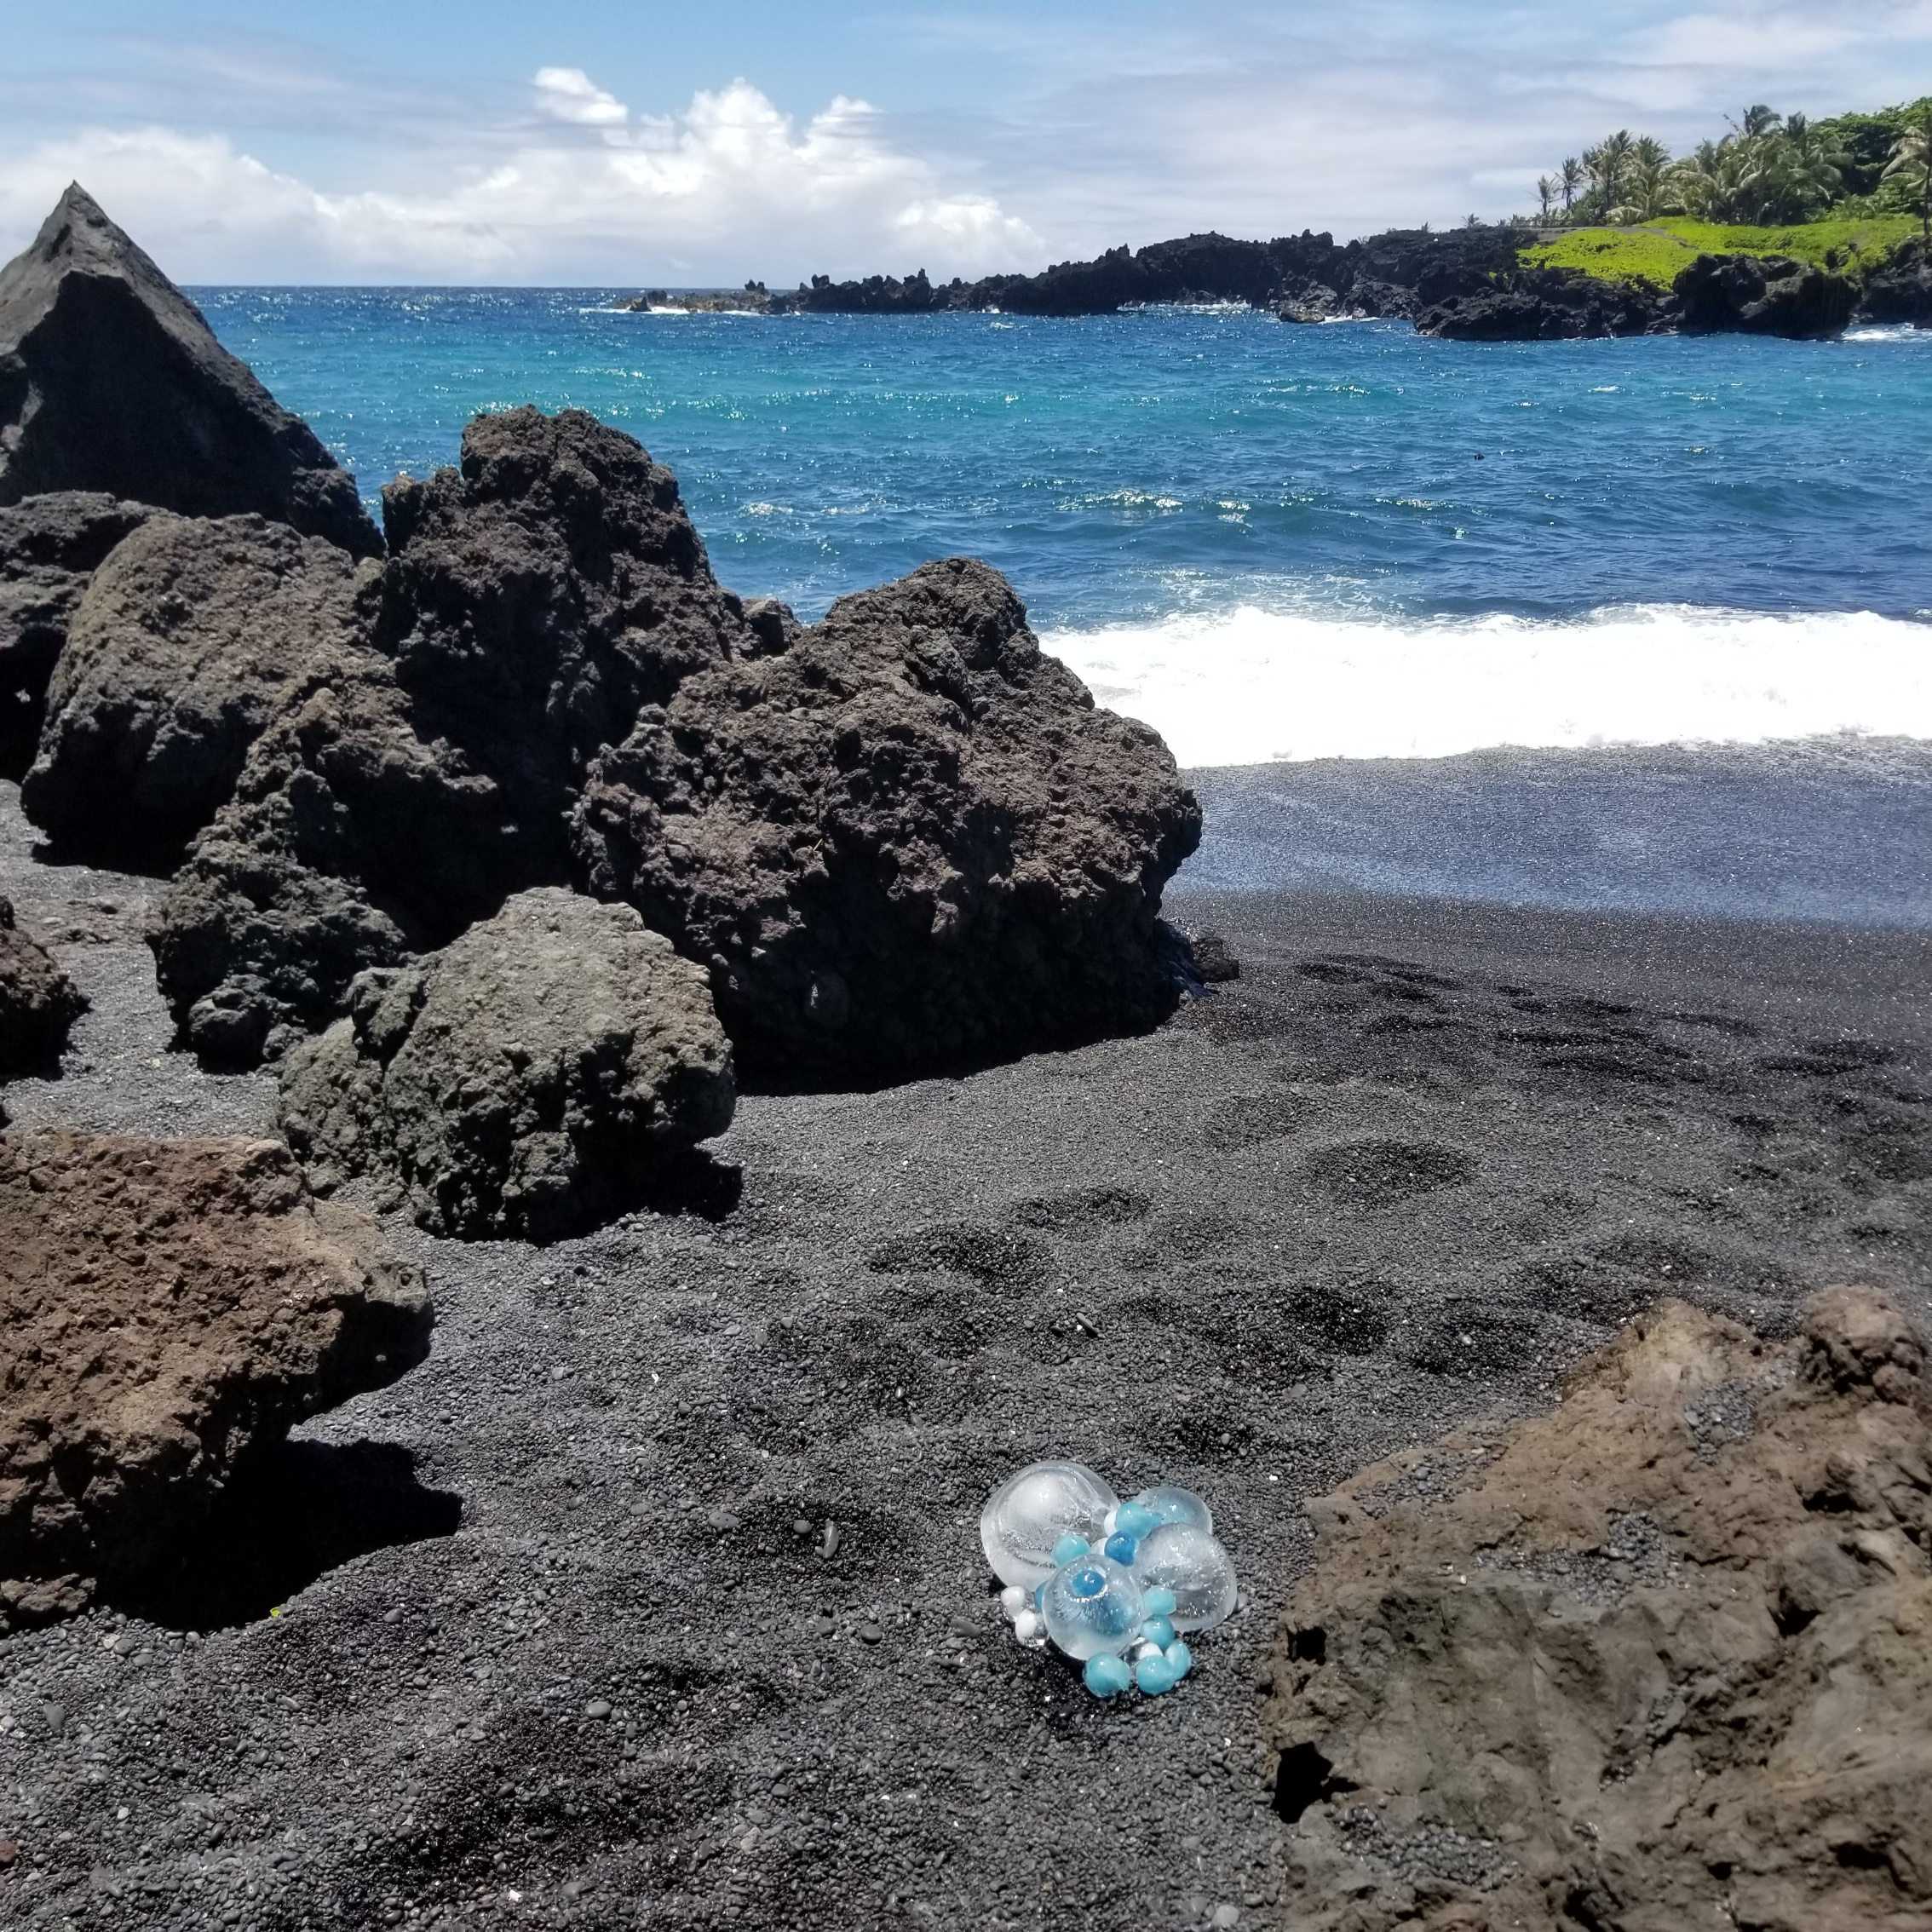 Blue butterfly pea infused ice installation melting fast on the black sand beach at Waianapanapa in Maui, June 2018.